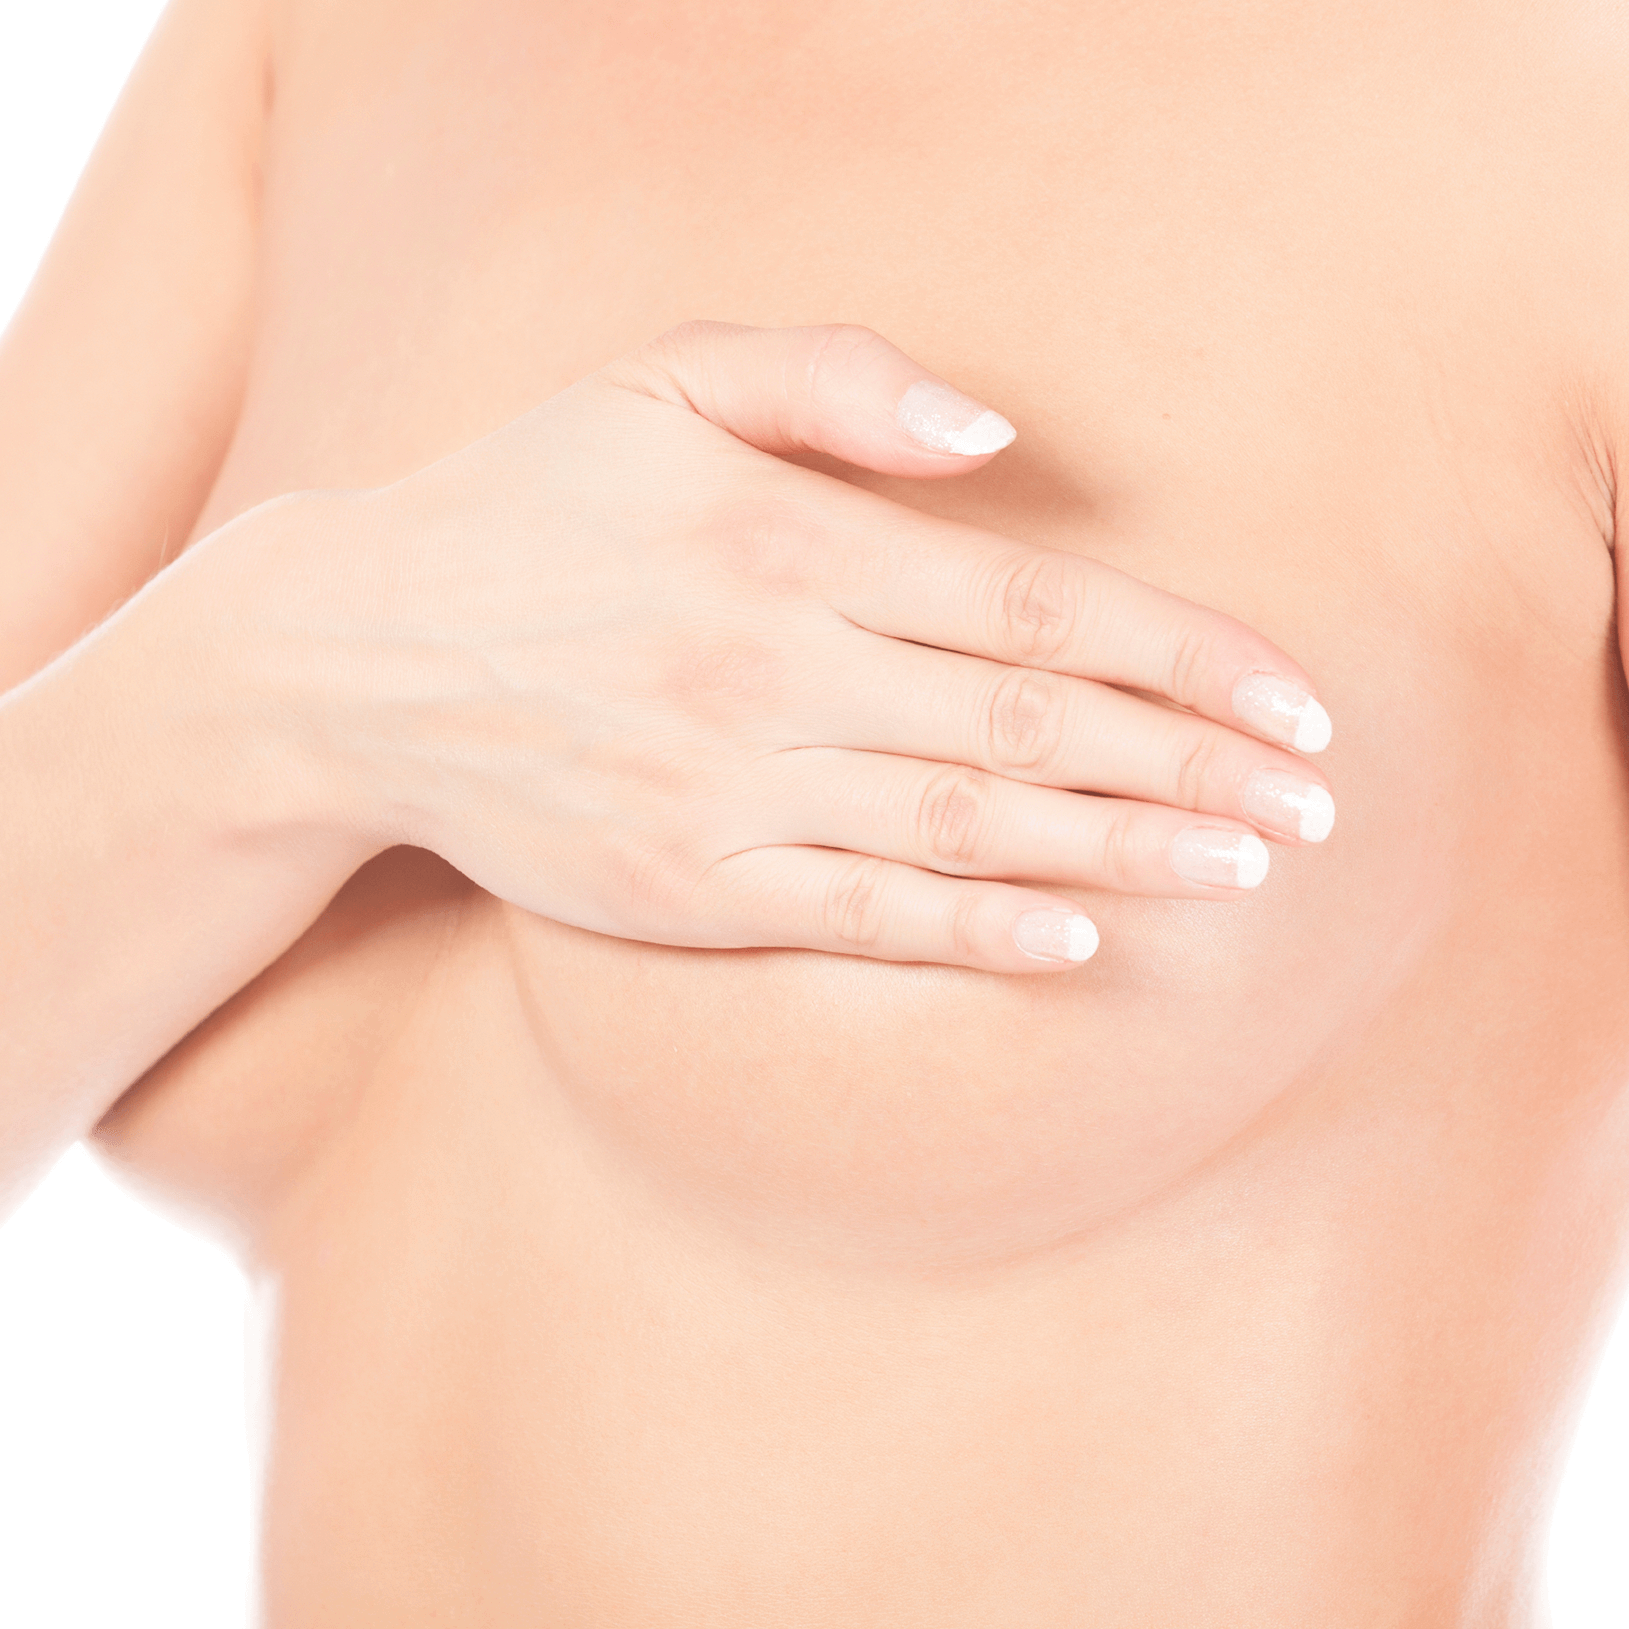 Areola/Nipple Procedures